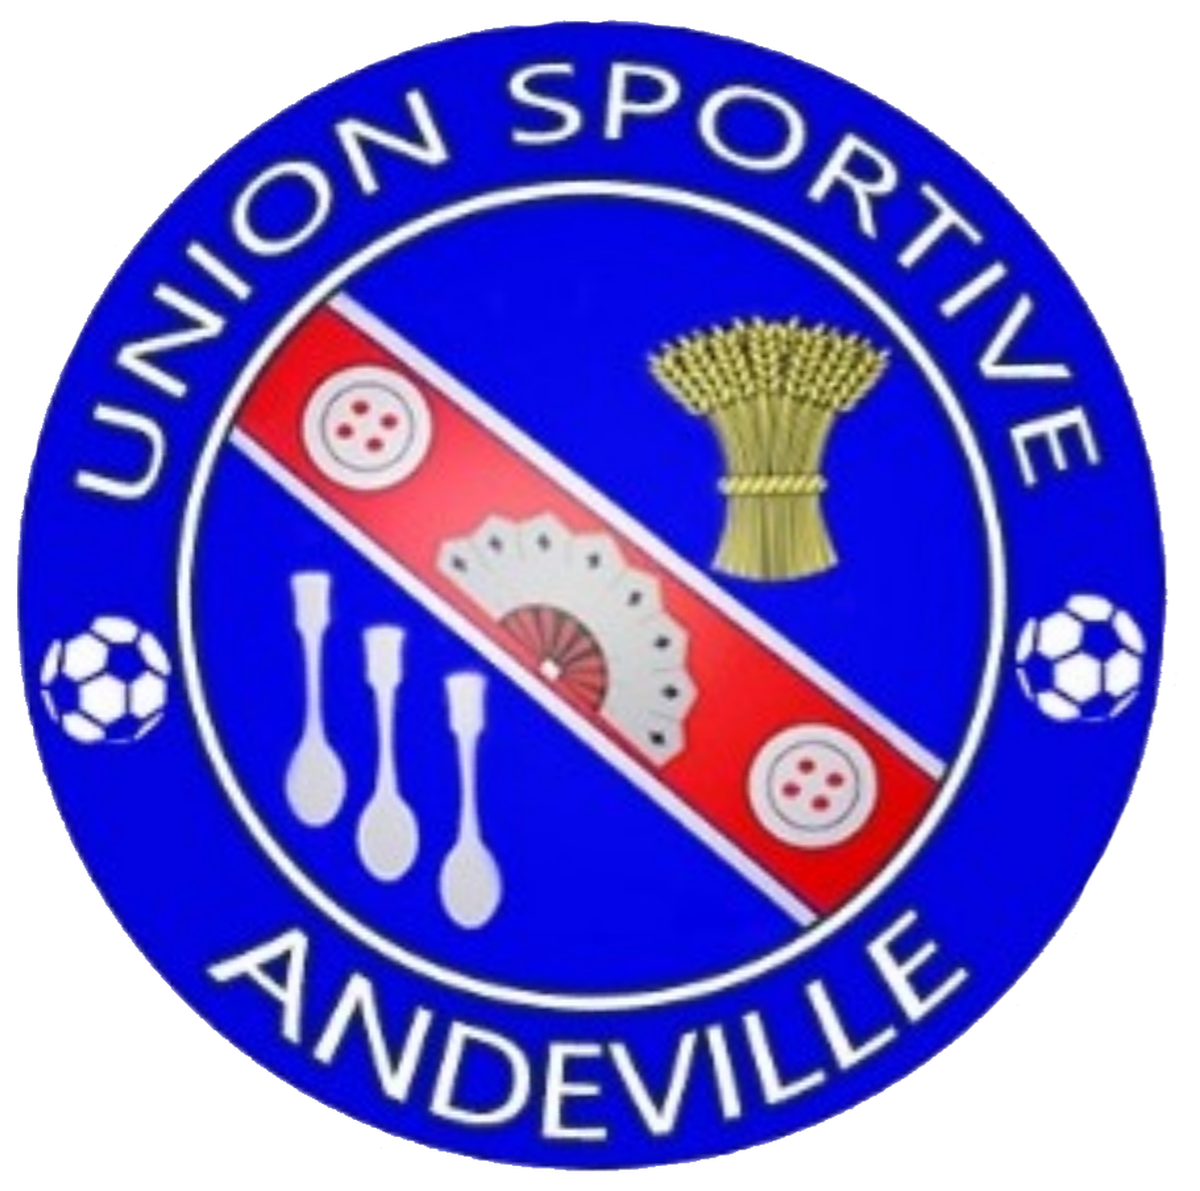 andeville 60570 associations